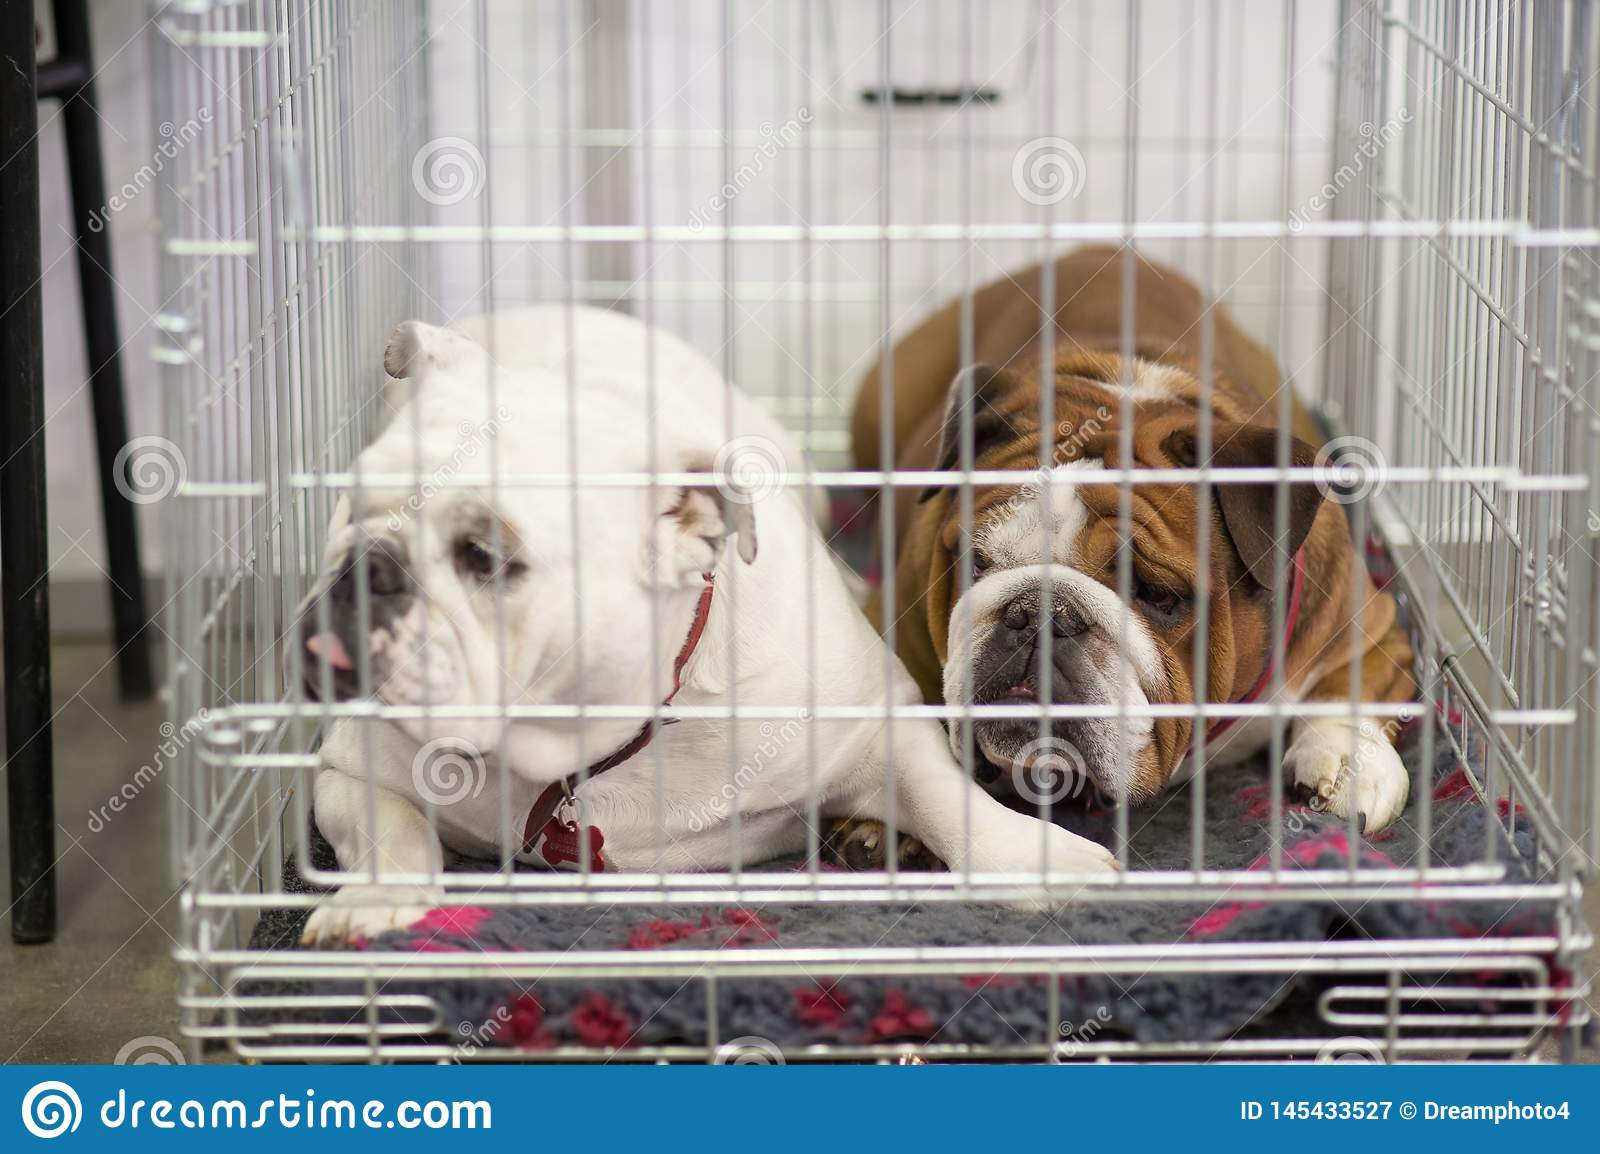 French Bulldogs in the cage